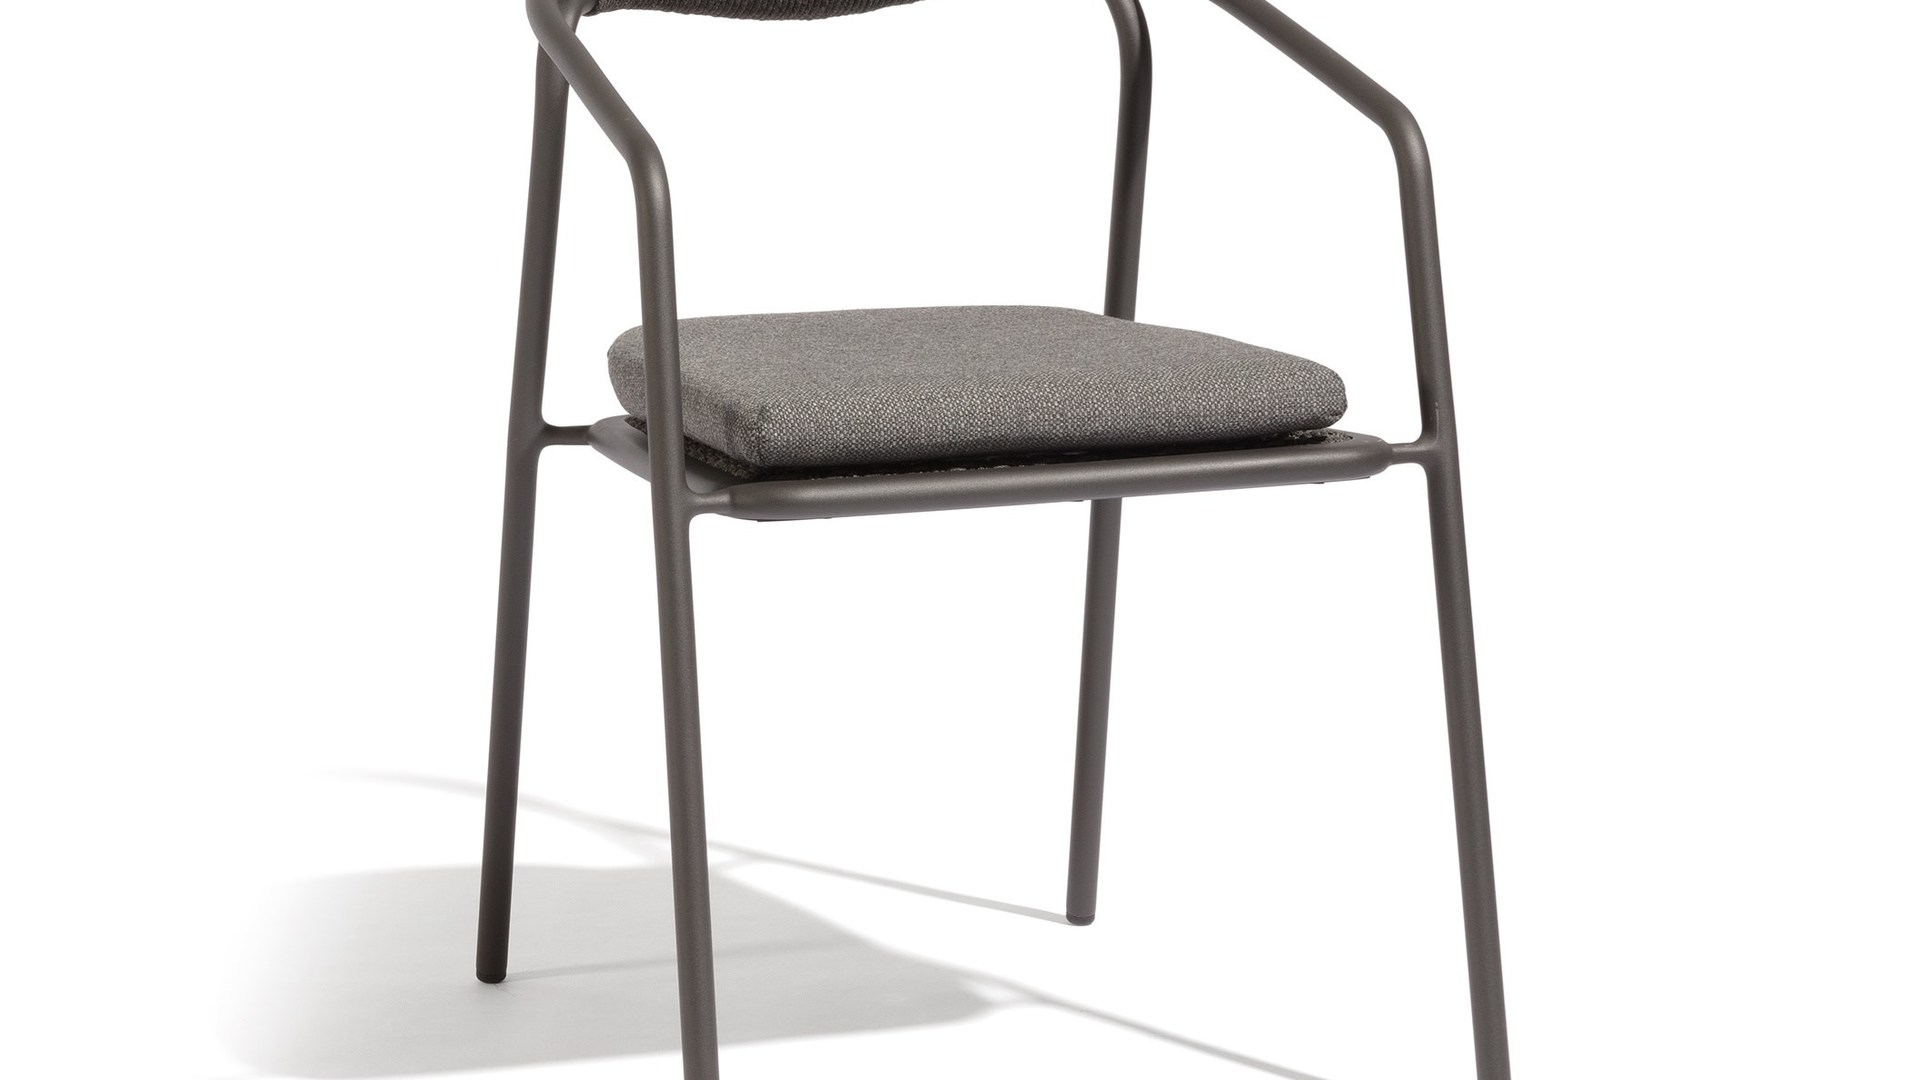 Duo chair 2.jpg